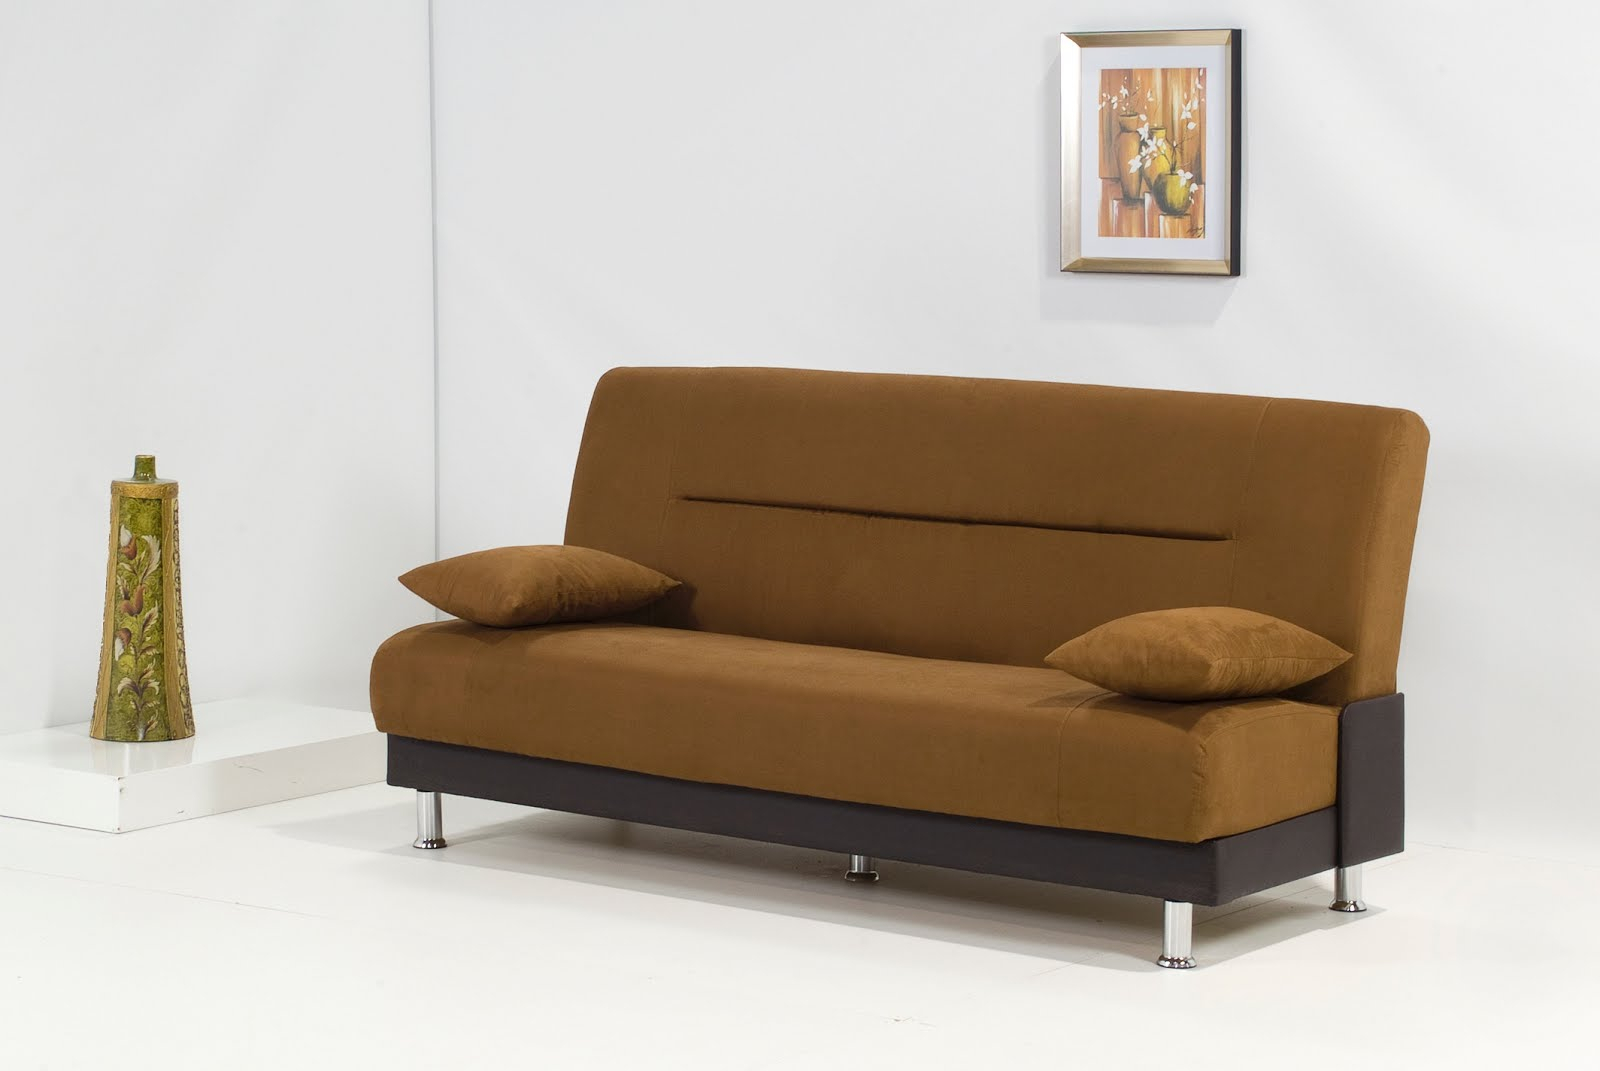 Simple Review About Living Room Furniture: Sleeper Sofas With Regard To Small Sofas And Chairs (View 14 of 15)